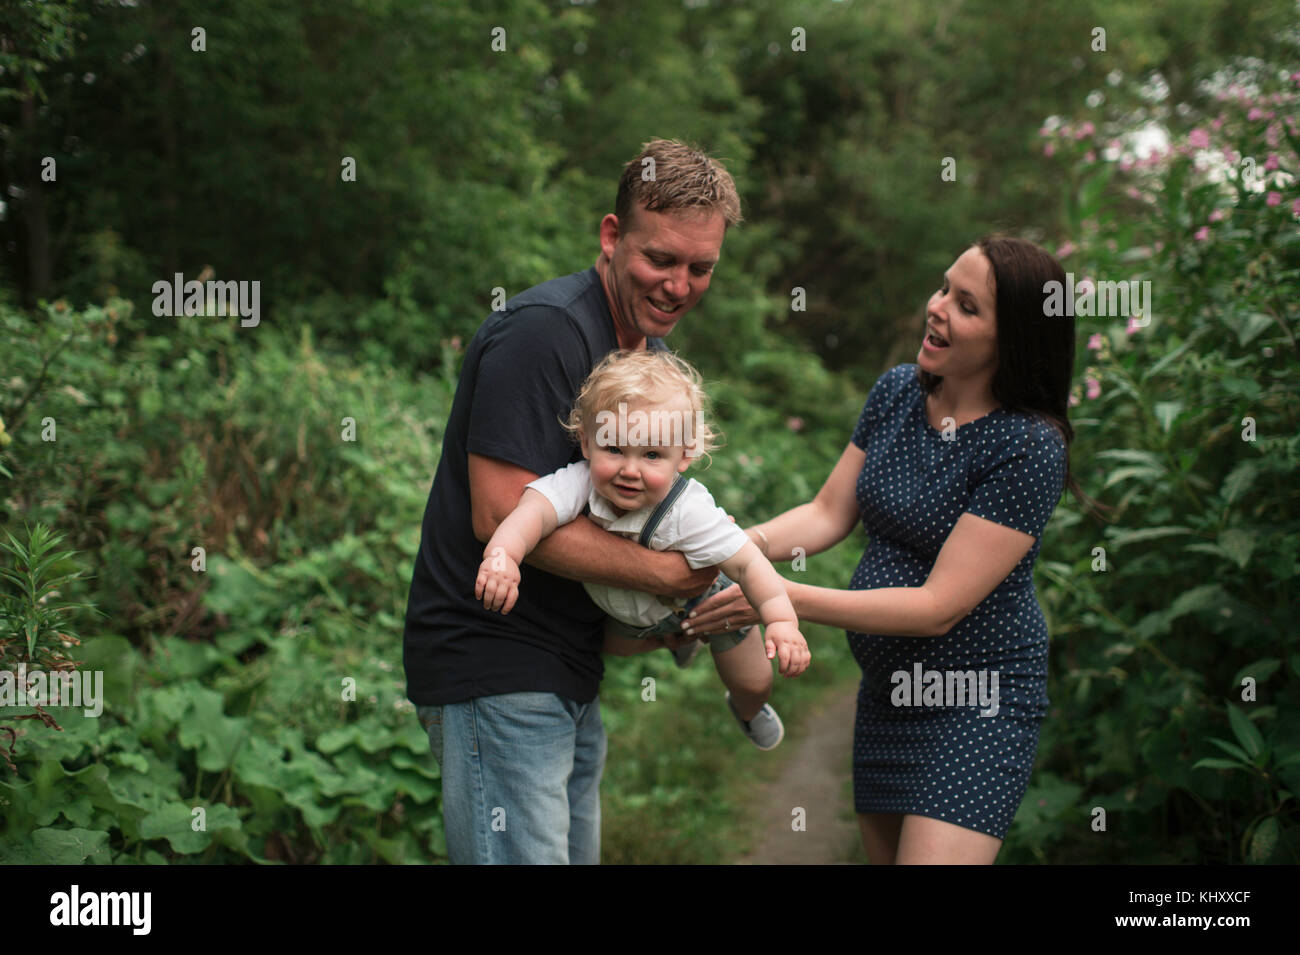 Pregnant couple swinging petit garçon sur pathway Photo Stock